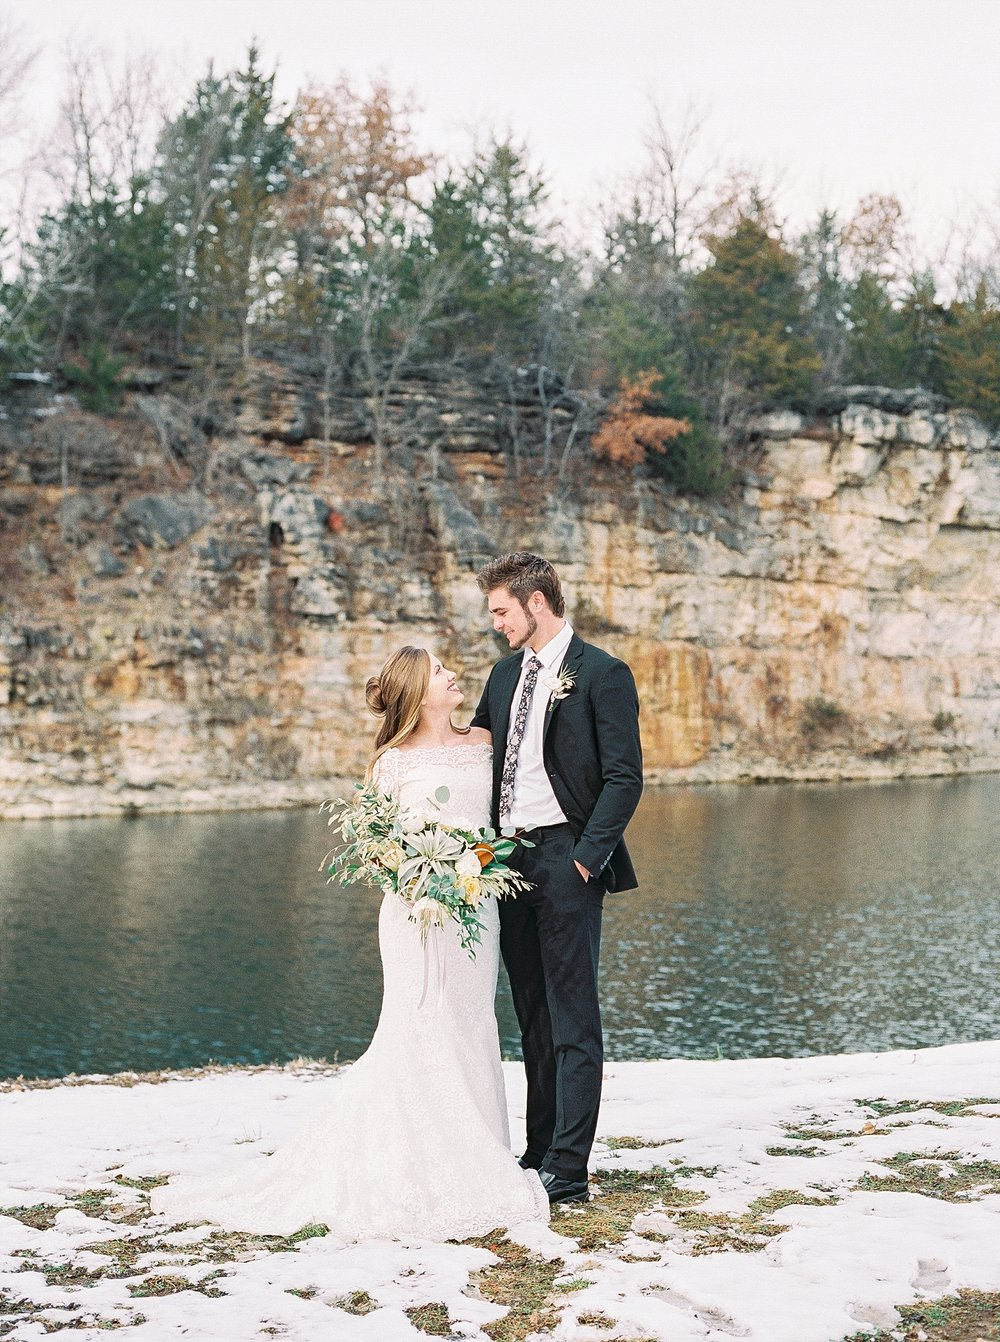 Snowy Winter Wedding at Wildcliff Events Lake With Earthy Jewel Tones and Organic Refined Style by Kelsi Kliethermes Photography Kansas City Missouri Wedding Photographer_0133.jpg